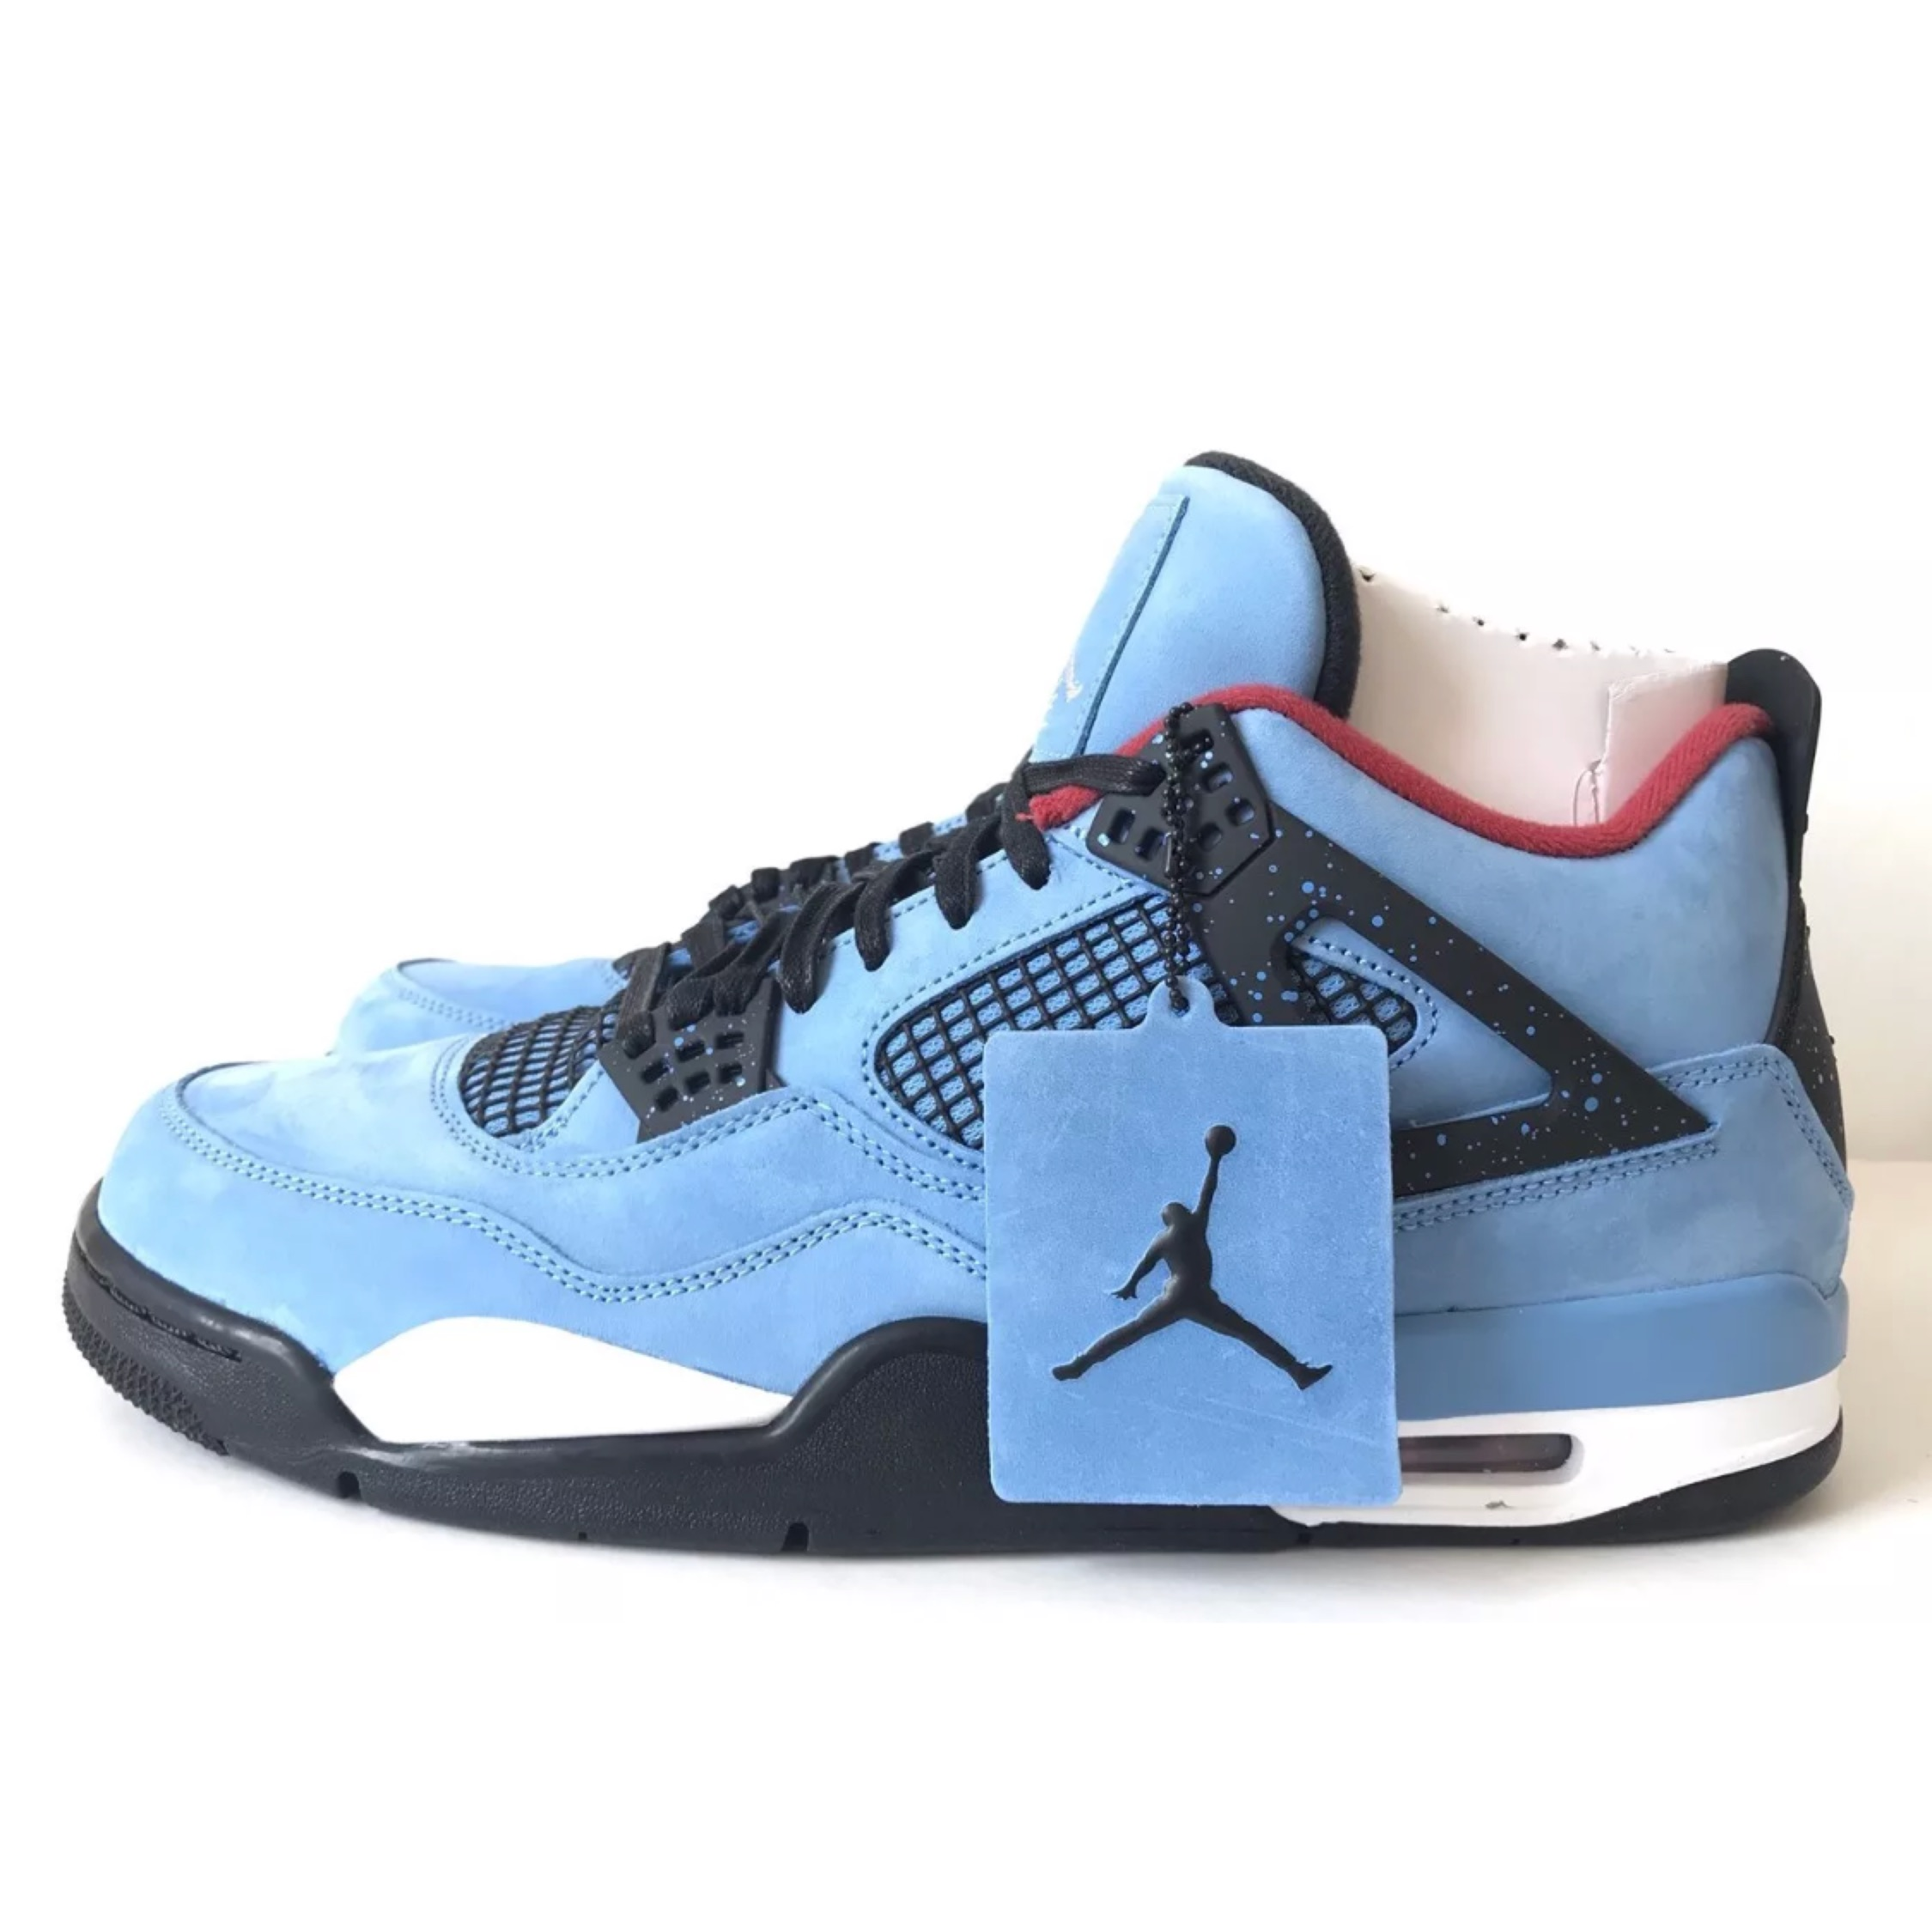 separation shoes 44b5b 218b8 Air Jordan 4 X Travis Scott Cactus Jack Sneakers